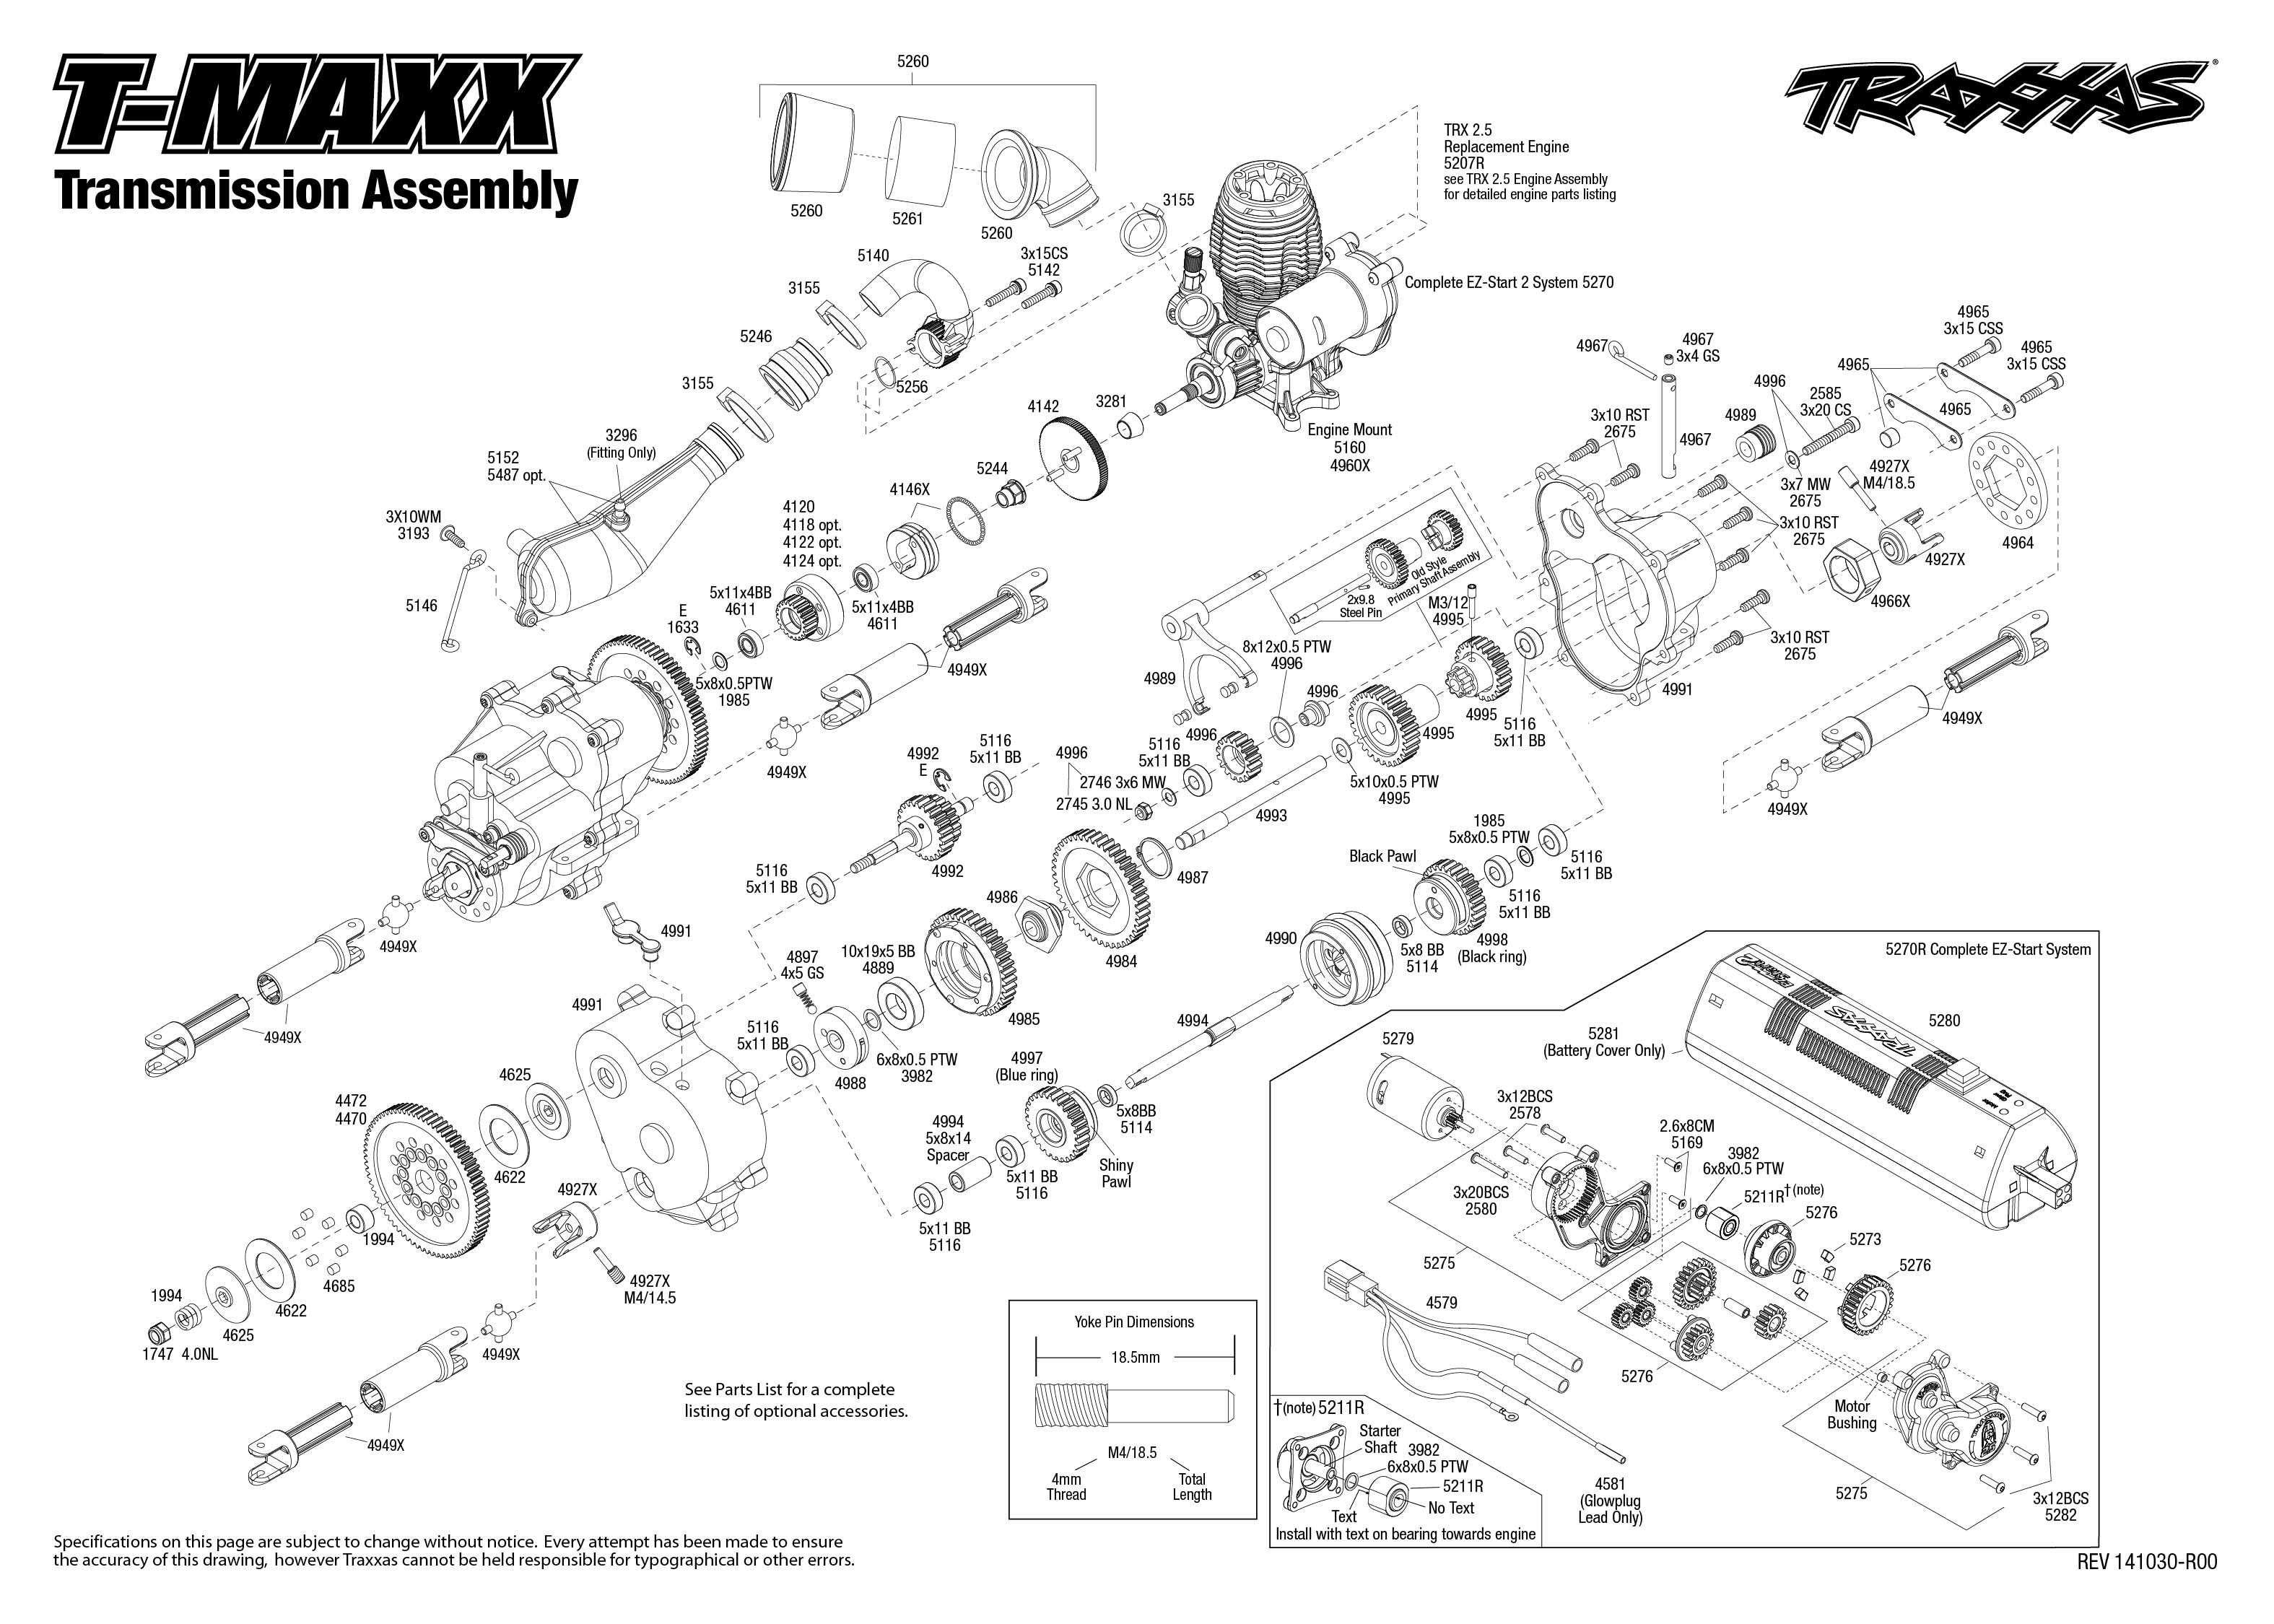 [DIAGRAM_1JK]  WRG-7916] Traxxas 2 5 Engine Diagram | Traxxas 2 5 Engine Diagram |  | genesisbestsellercollections050818.mx.tl